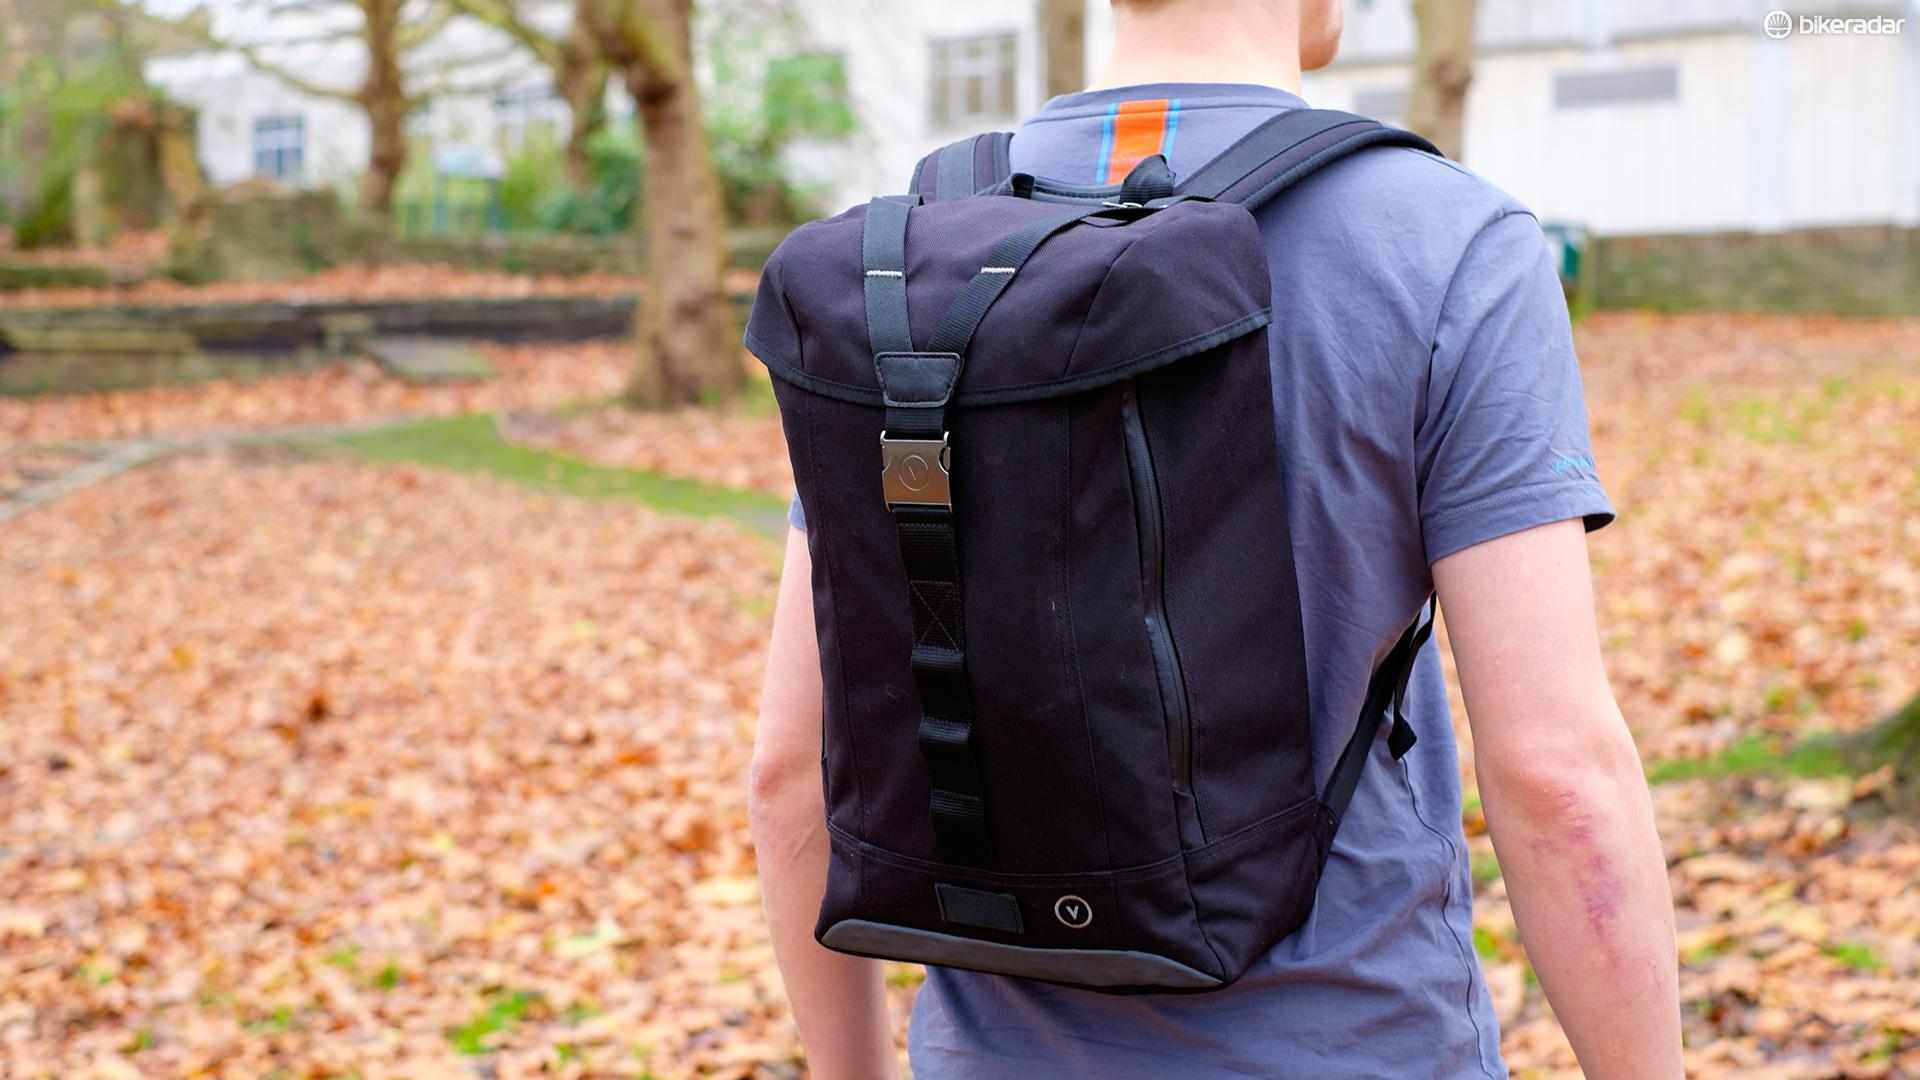 Vulpine's Commuter backpack is one we wouldn't recommend